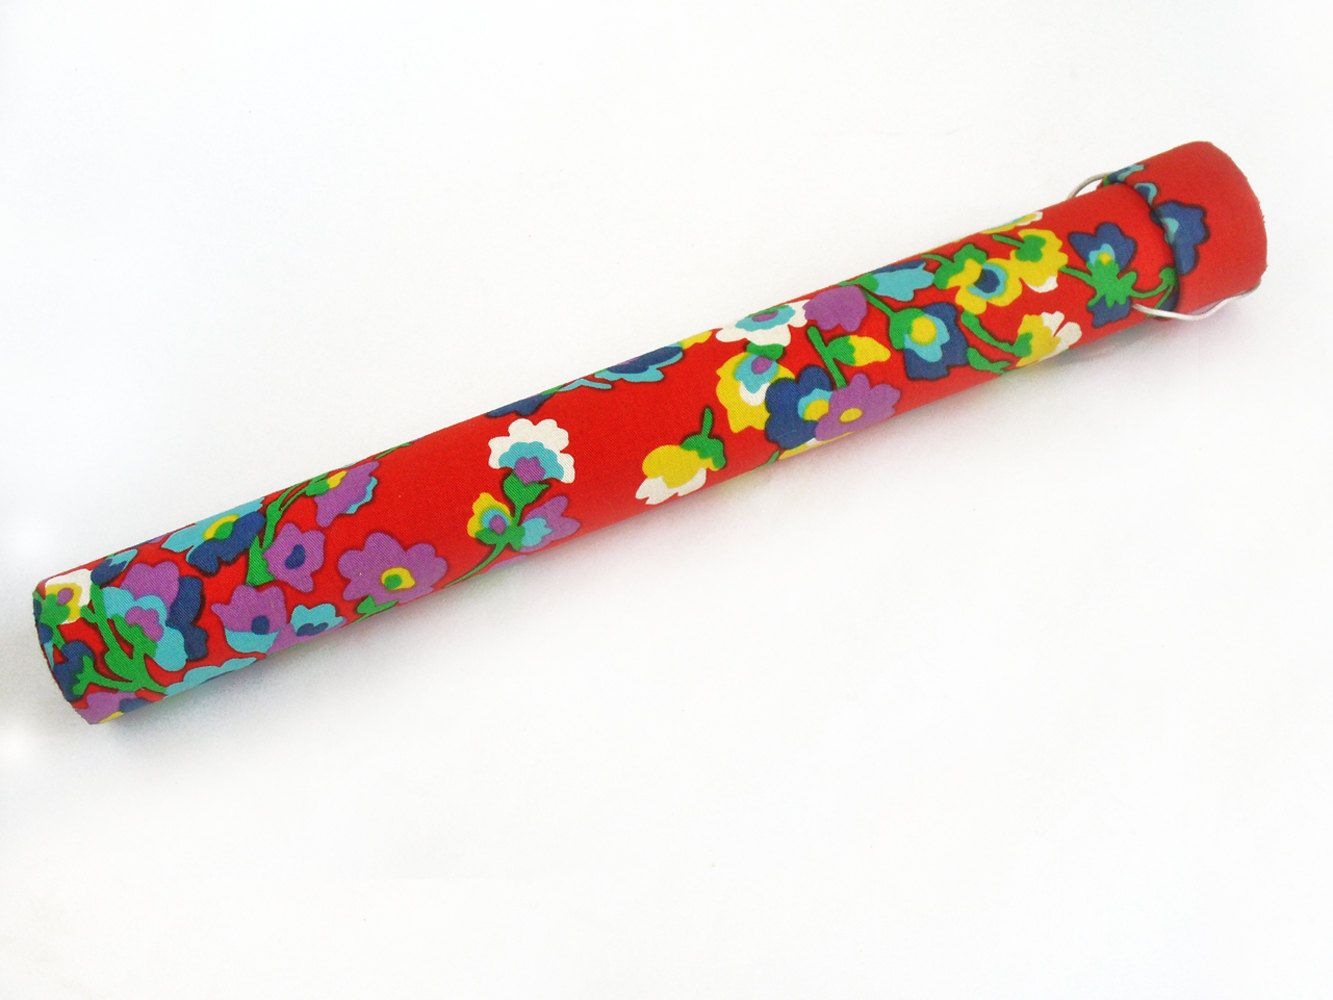 Knitting needle case - fabric covered cardboard storage tube ...